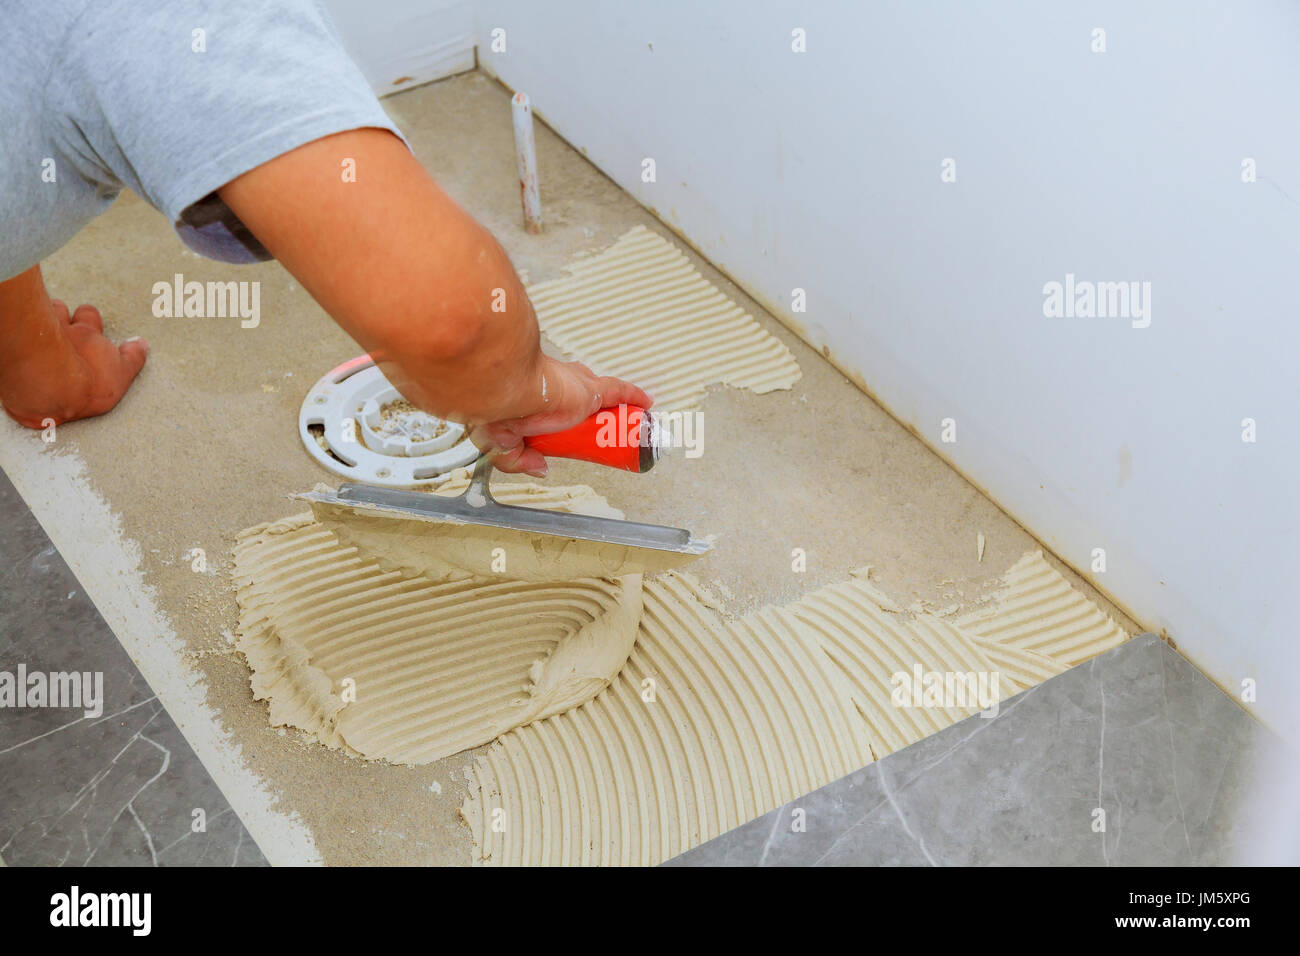 Stylish trendy white ceramic tile with a chamfer on the tiler stylish trendy white ceramic tile with a chamfer on the tiler hands in the process of laying white rectangular tiles on bathroom wall repair of apart dailygadgetfo Image collections